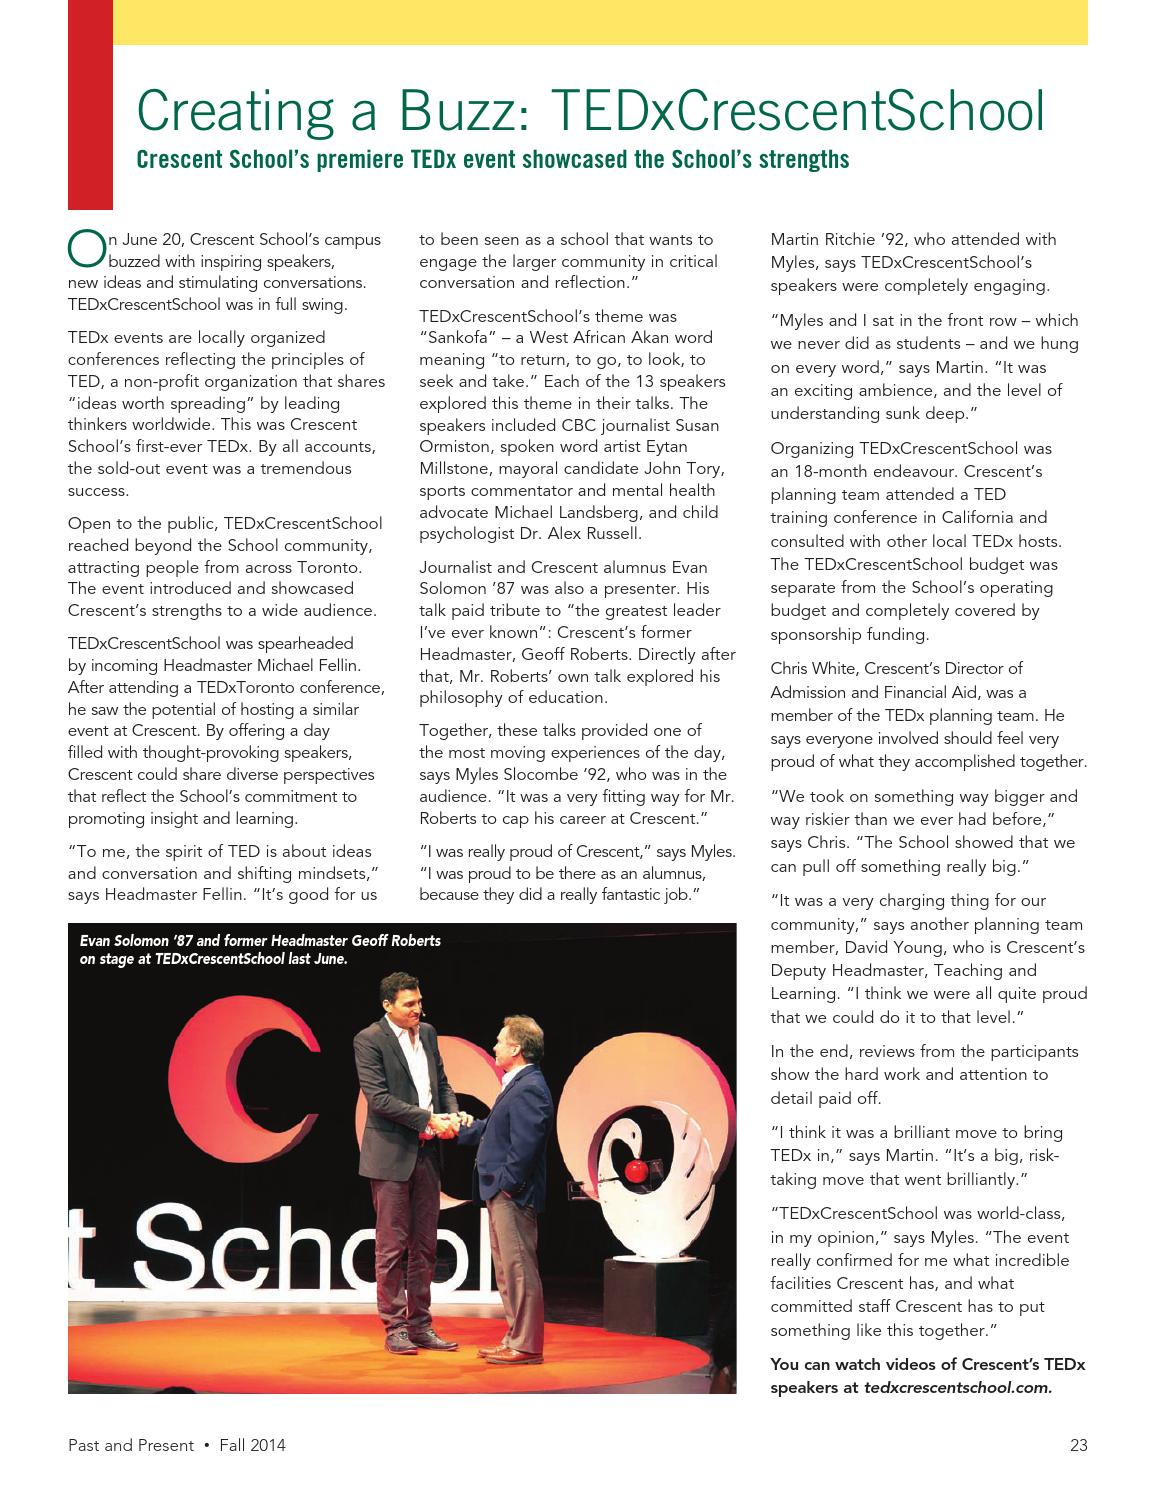 Past Present Fall 2014 By Crescent School Issuu